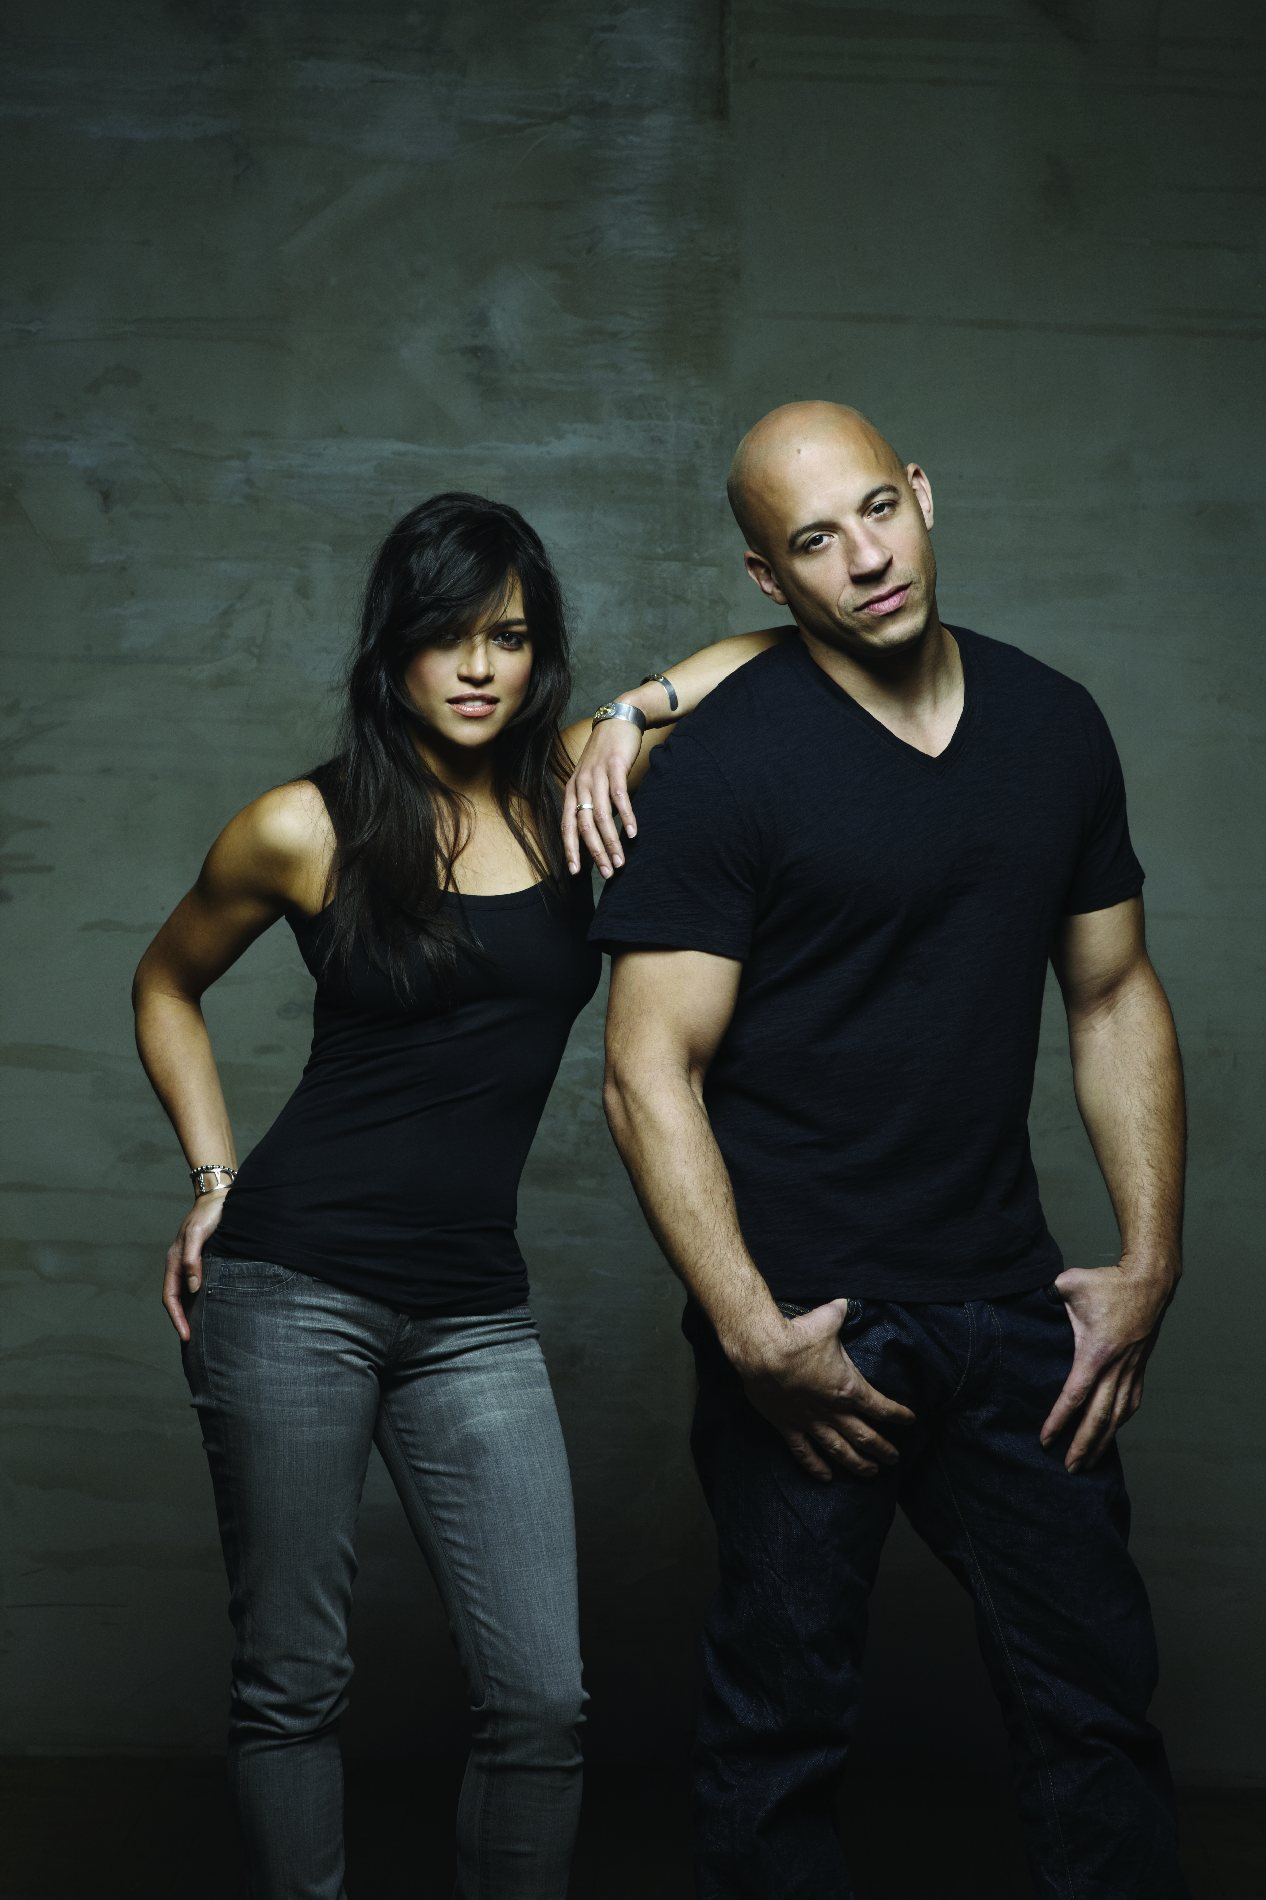 Dom  amp  Letty Michelle  amp  VinVin Diesel And Michelle Rodriguez Photoshoot